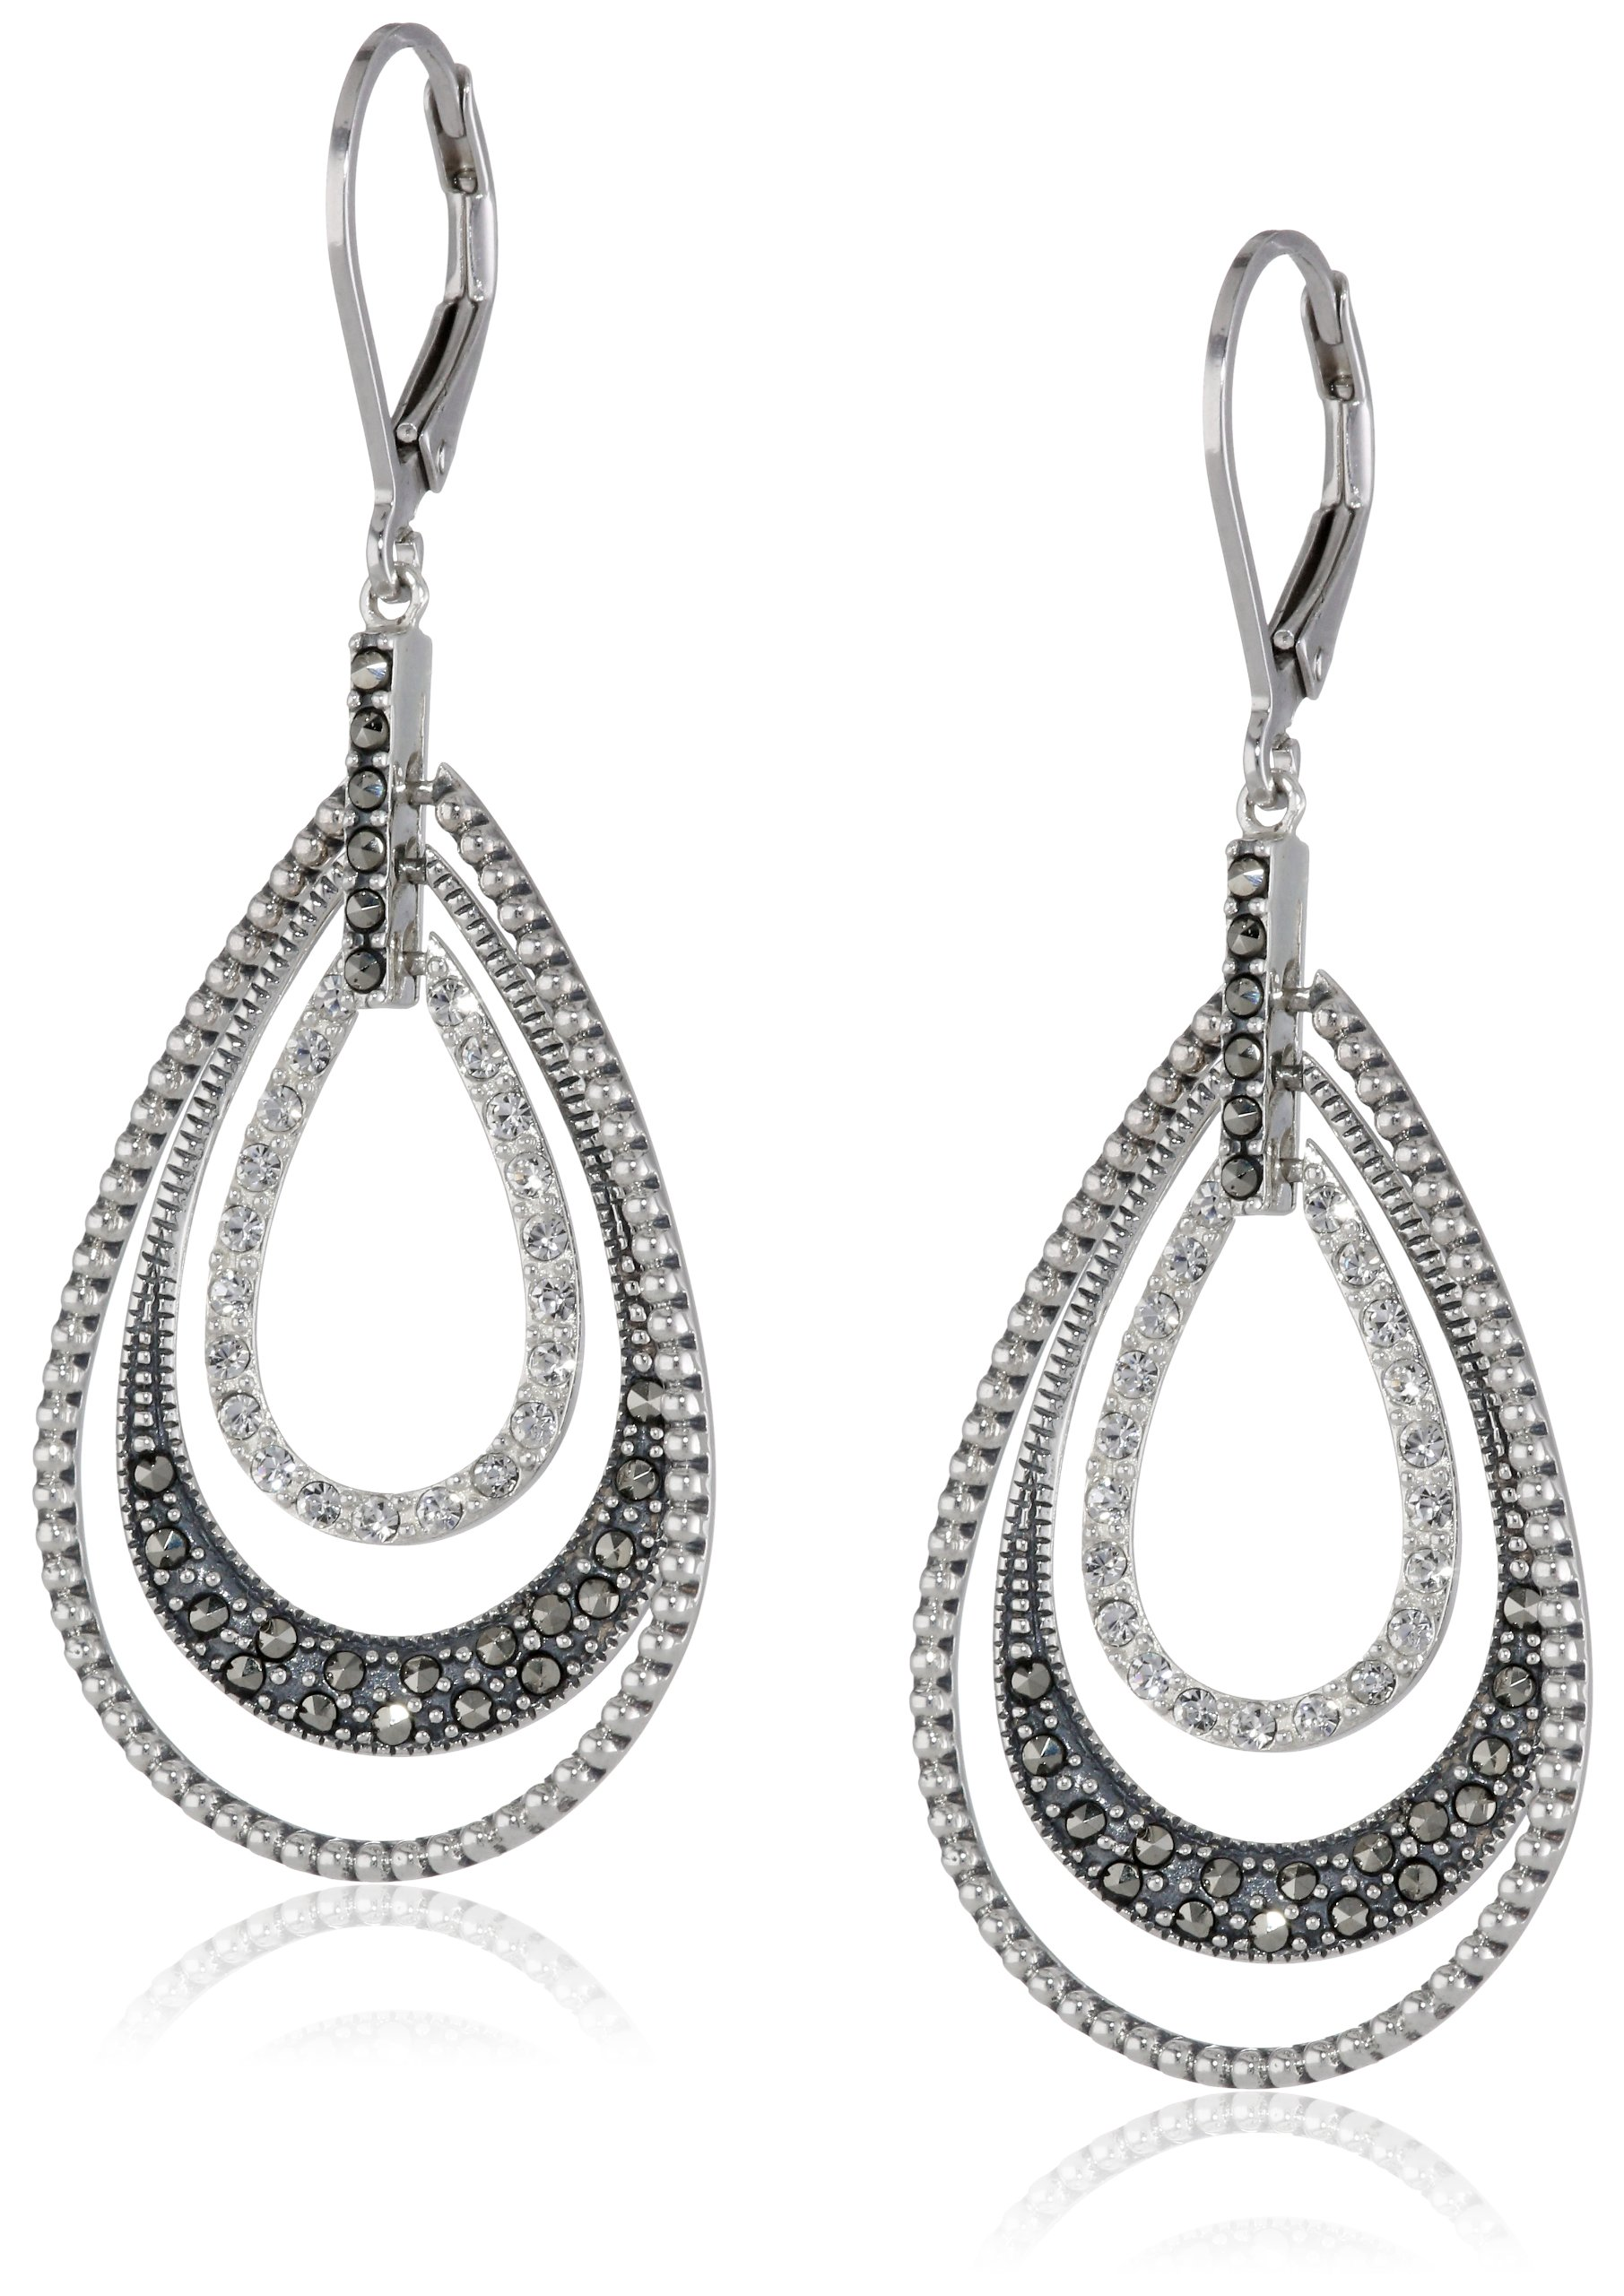 Judith Jack ''Classics'' Sterling Silver, Marcasite, Crystal Teardrop Lever Back Earrings